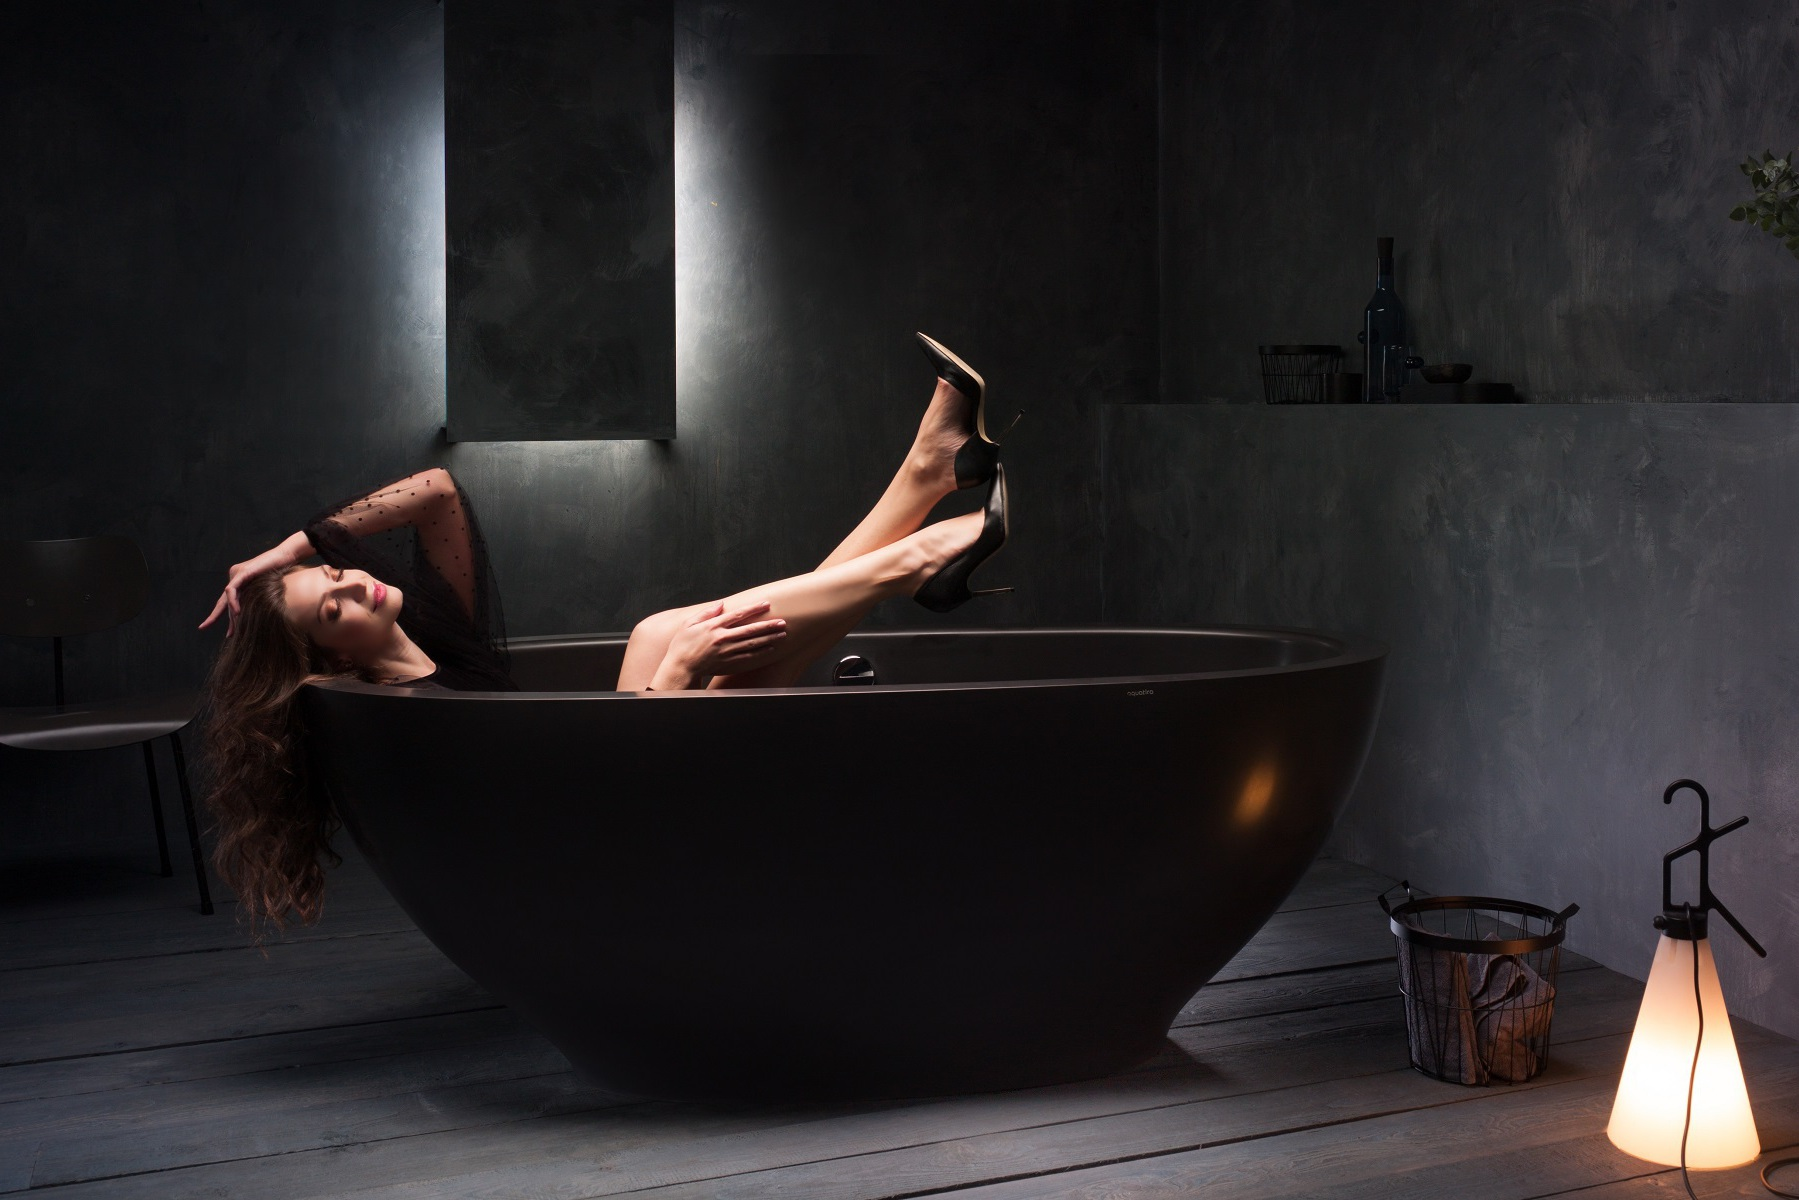 Karolina-Black-Stone-Bathtub-1200-1800